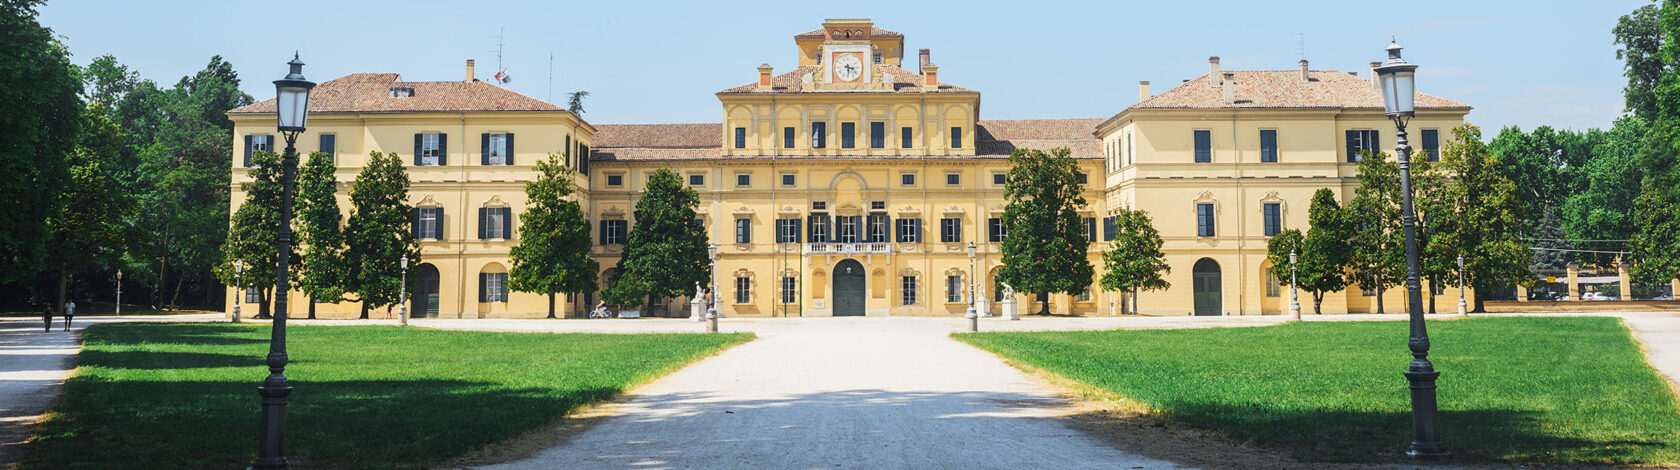 Palazzo Ducale building in Parco Ducale park Parma city Emilia-Romagna region central Italy Europe